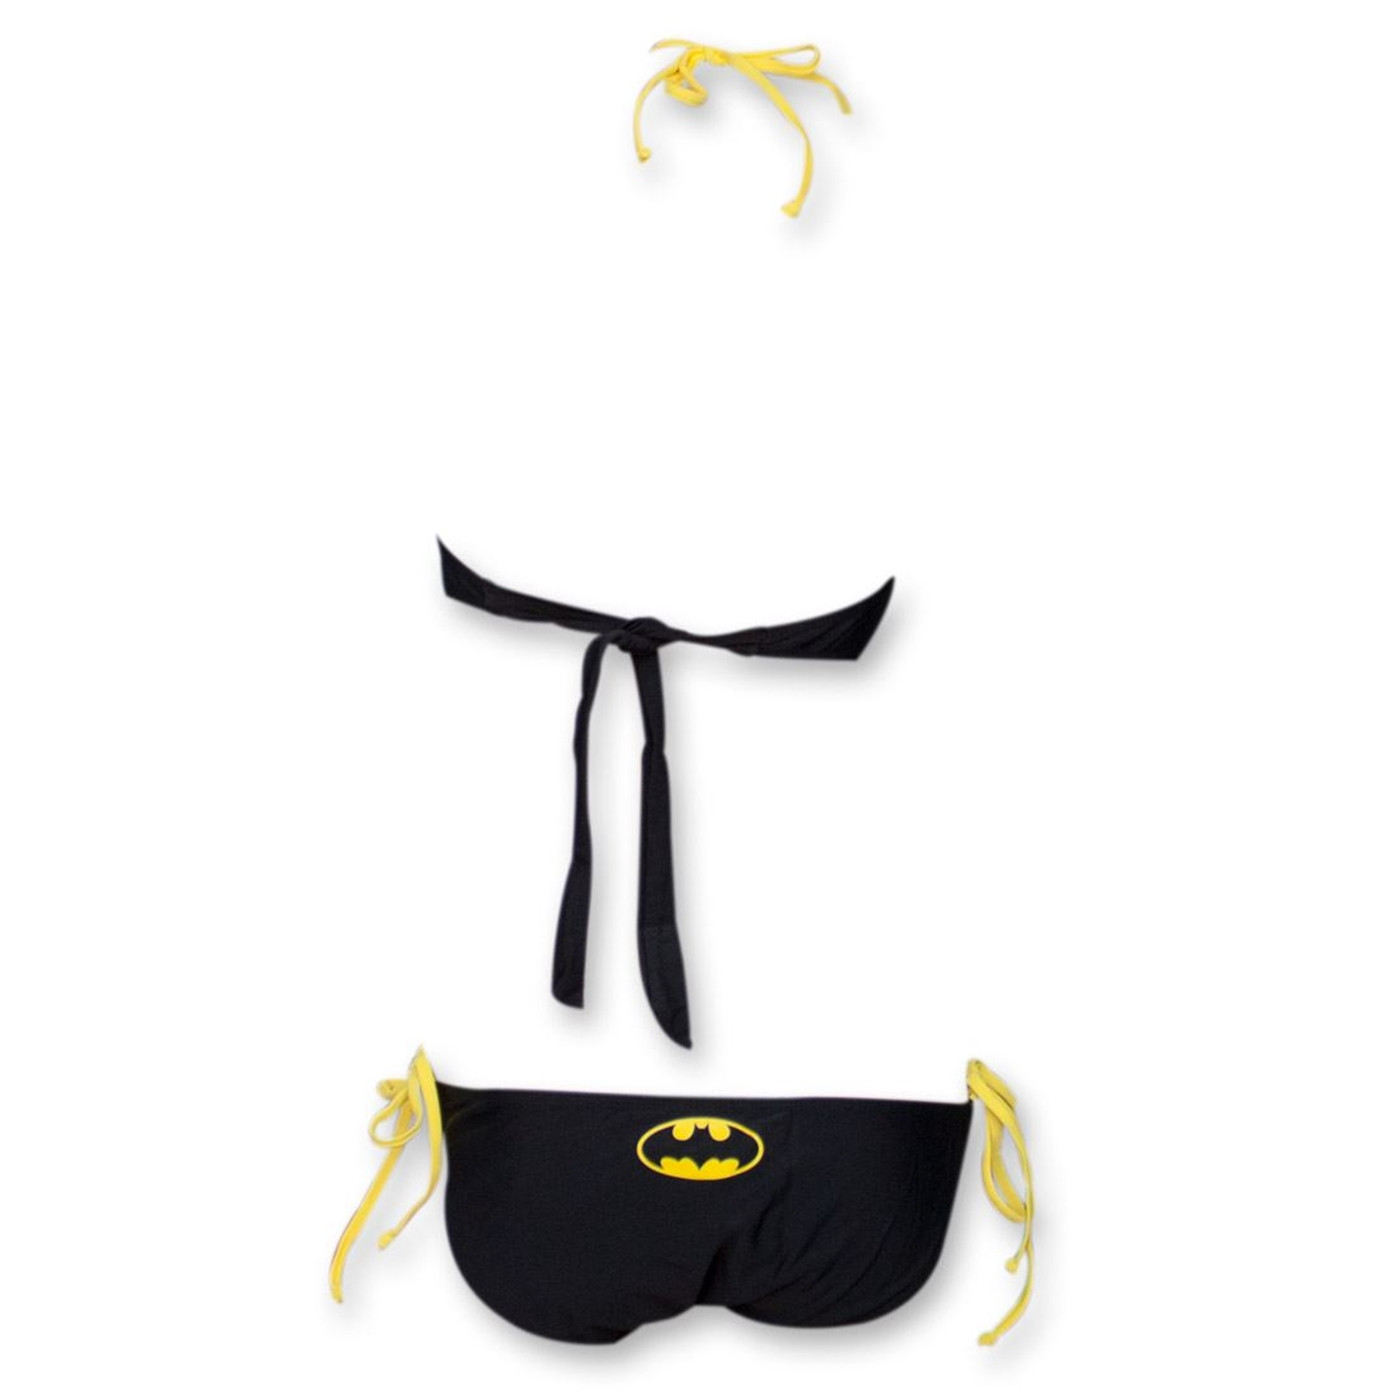 Batman Symbol Monokini Swimsuit